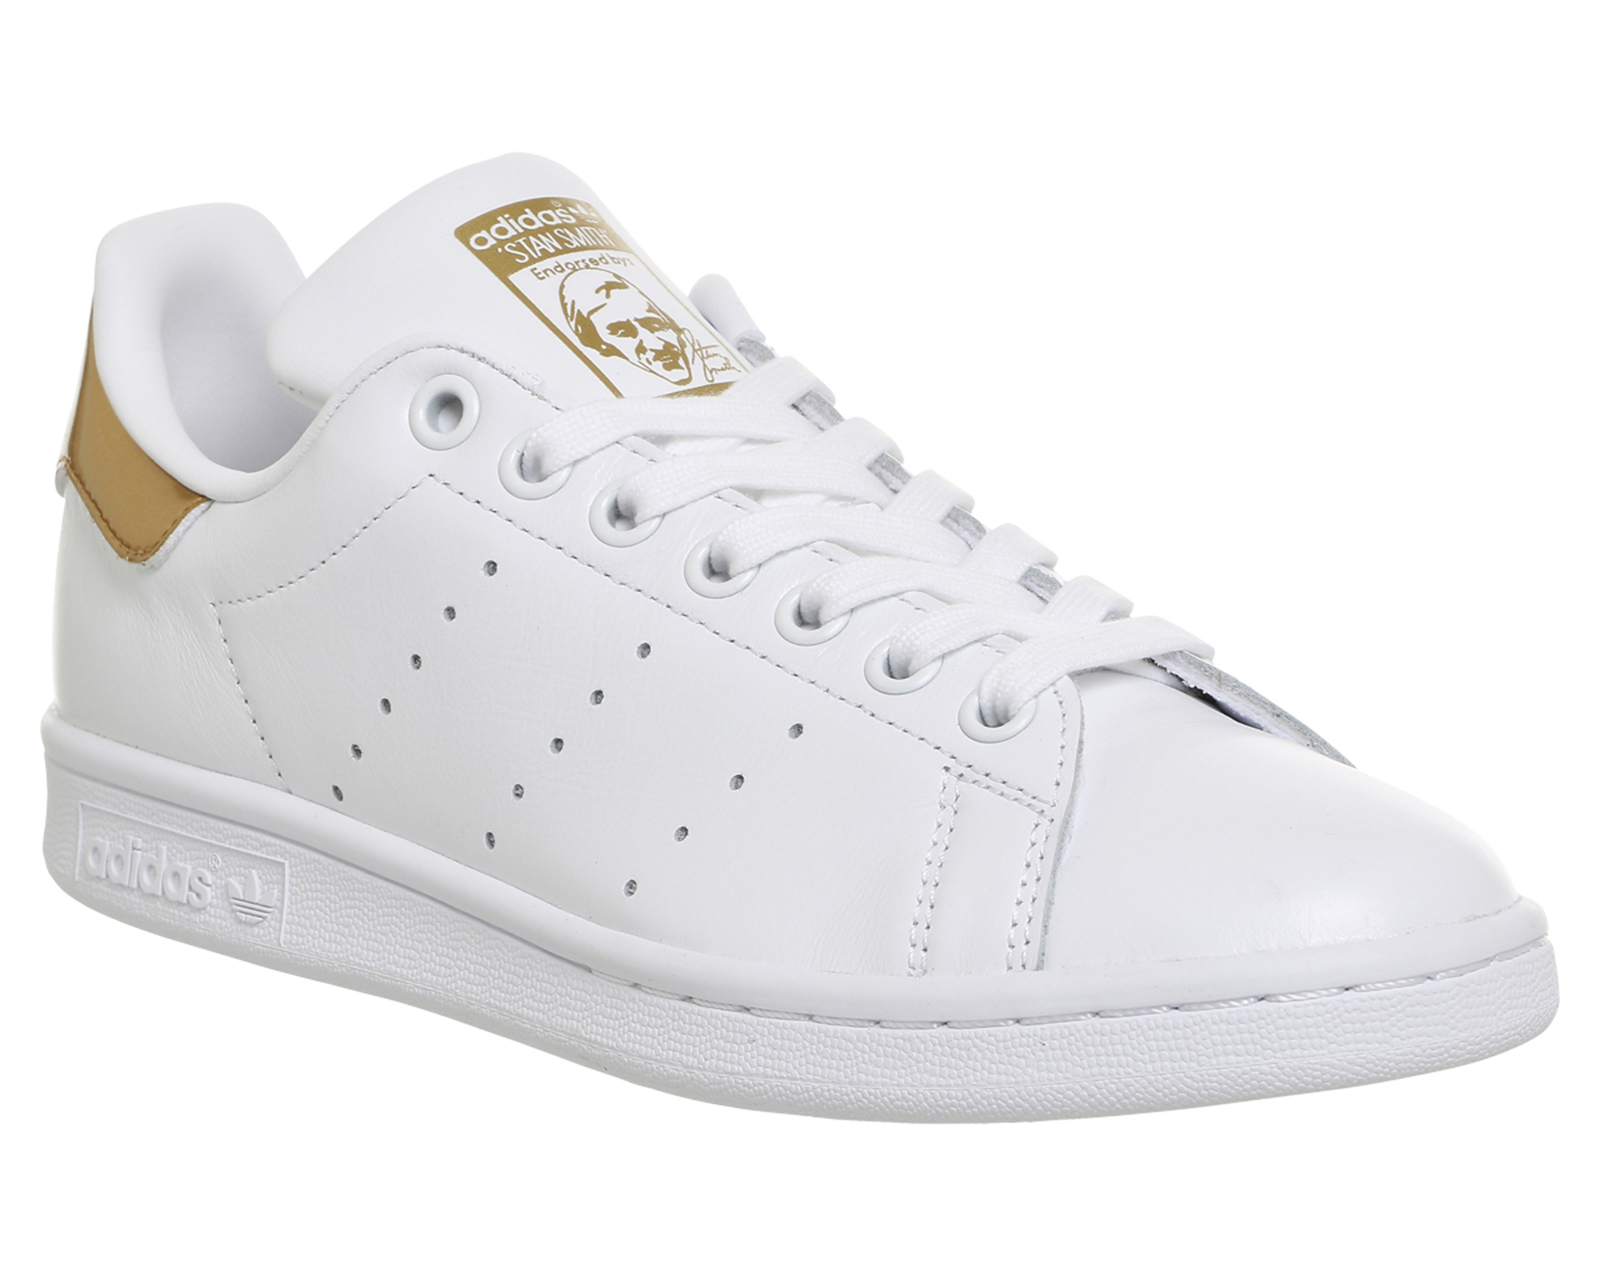 mens adidas stan smith white bronze gold trainers shoes ebay. Black Bedroom Furniture Sets. Home Design Ideas